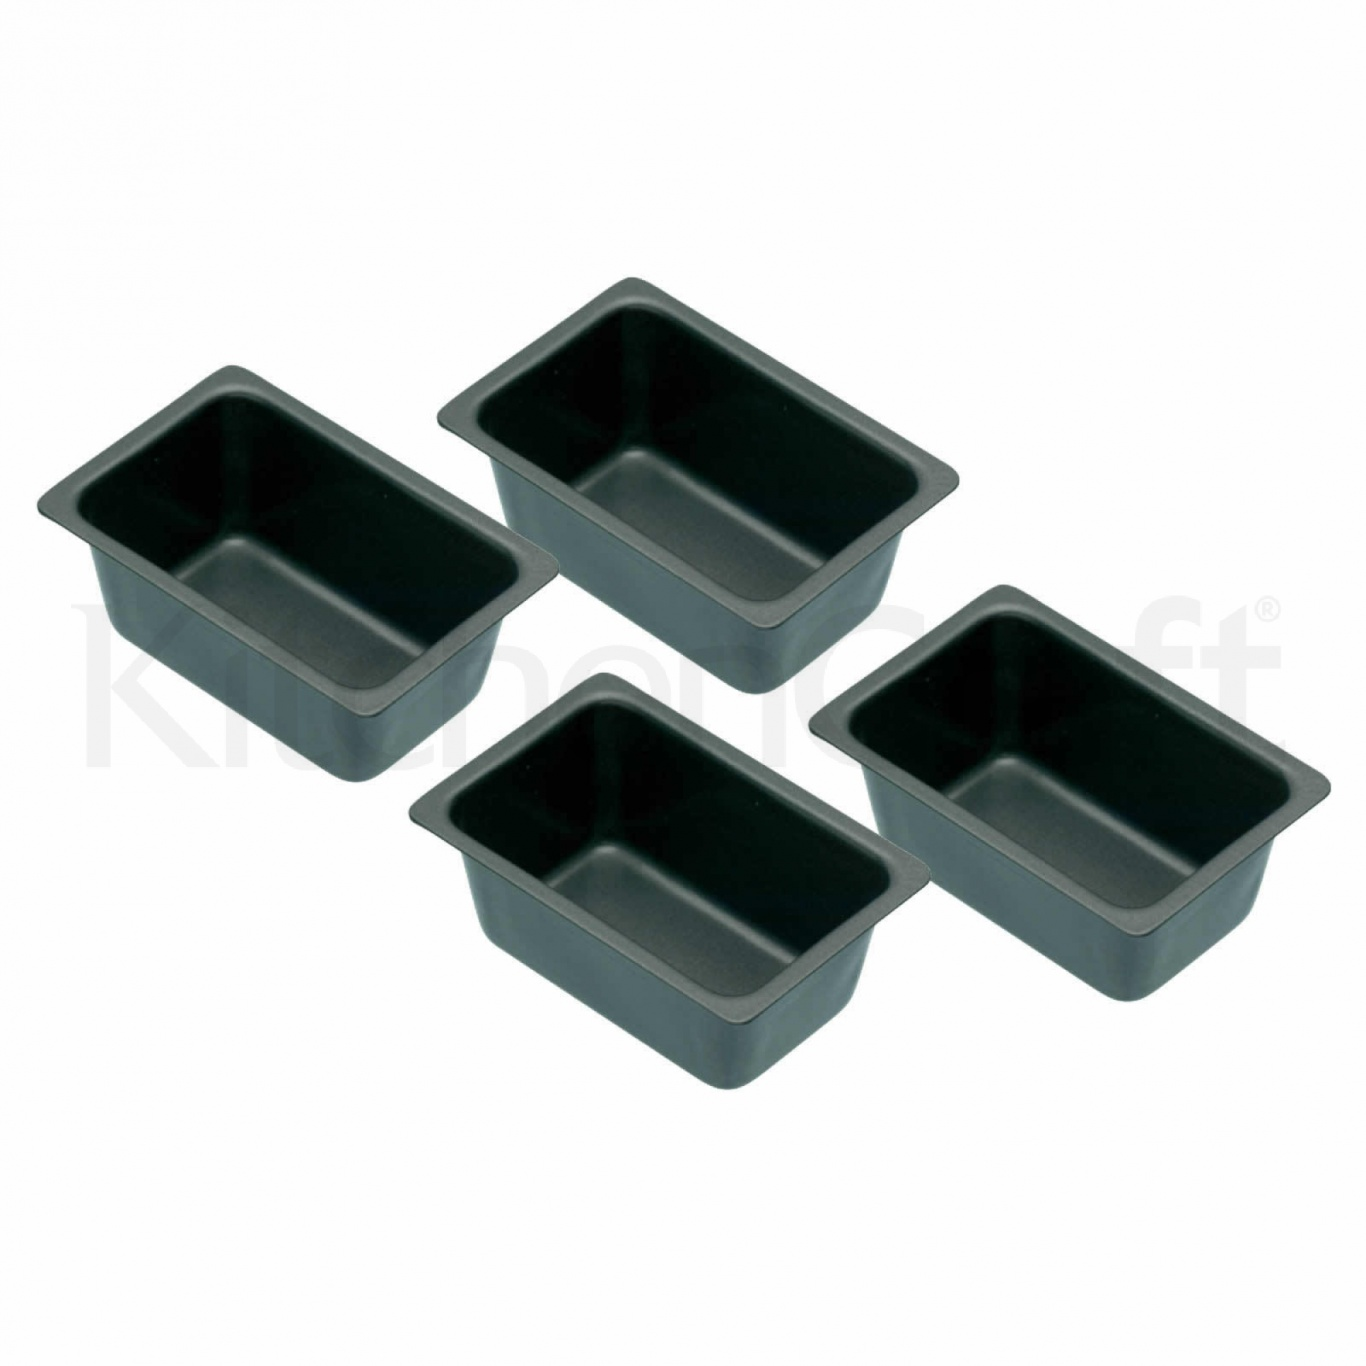 Image of Non Stick Mini Loaf Tins Pack of 4